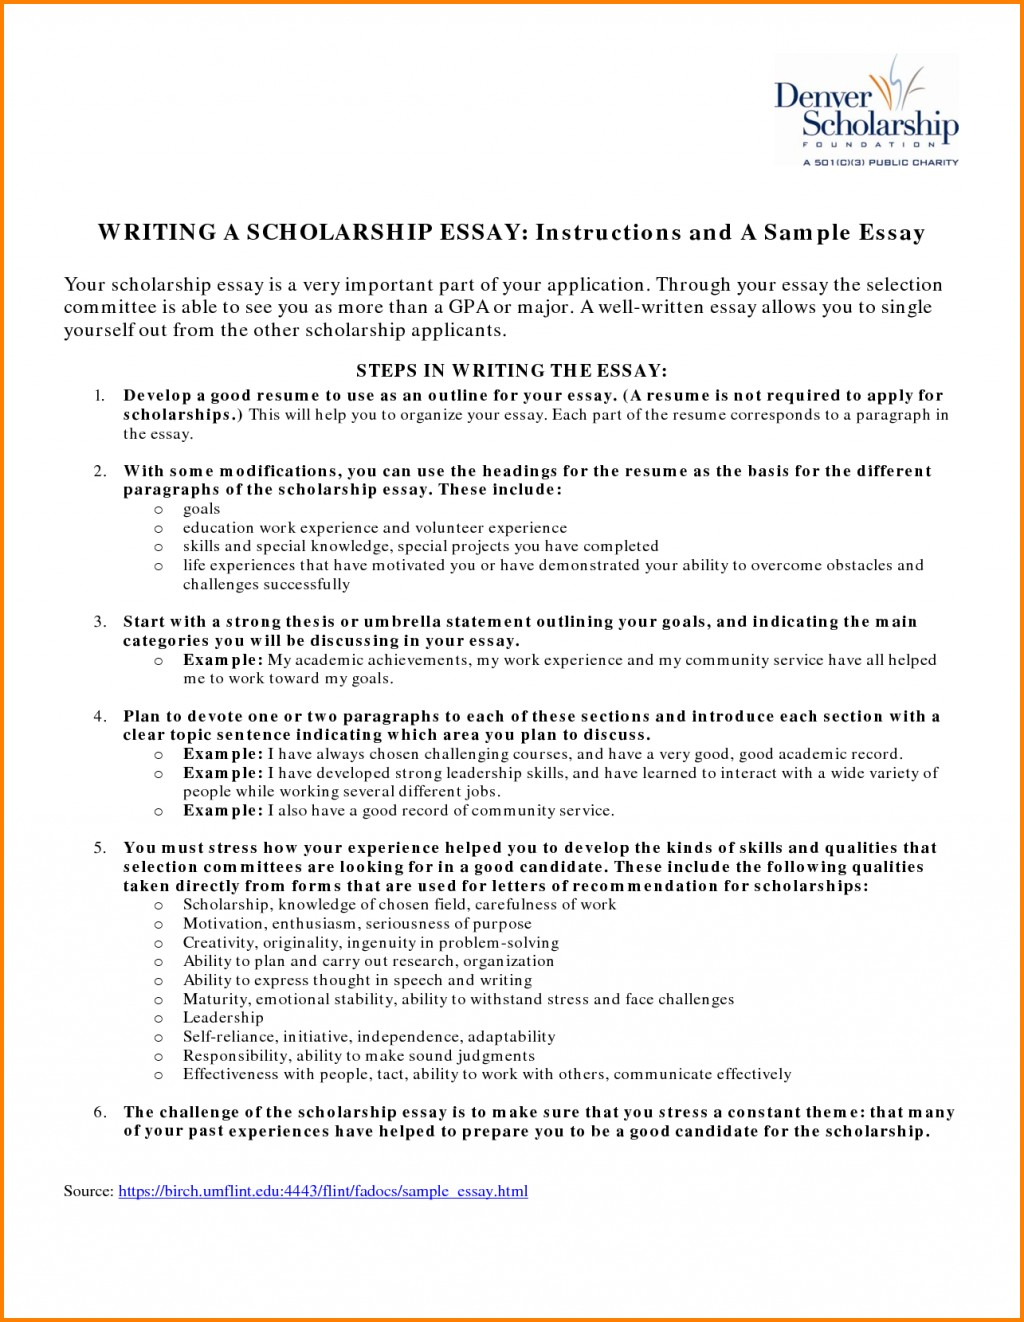 023 Inspiration Resume Examples For Scholarships With Nursing Scholarship Application Essay Example Fair In Sampl Nurse Staggering Samples Why You Deserve Questions Large